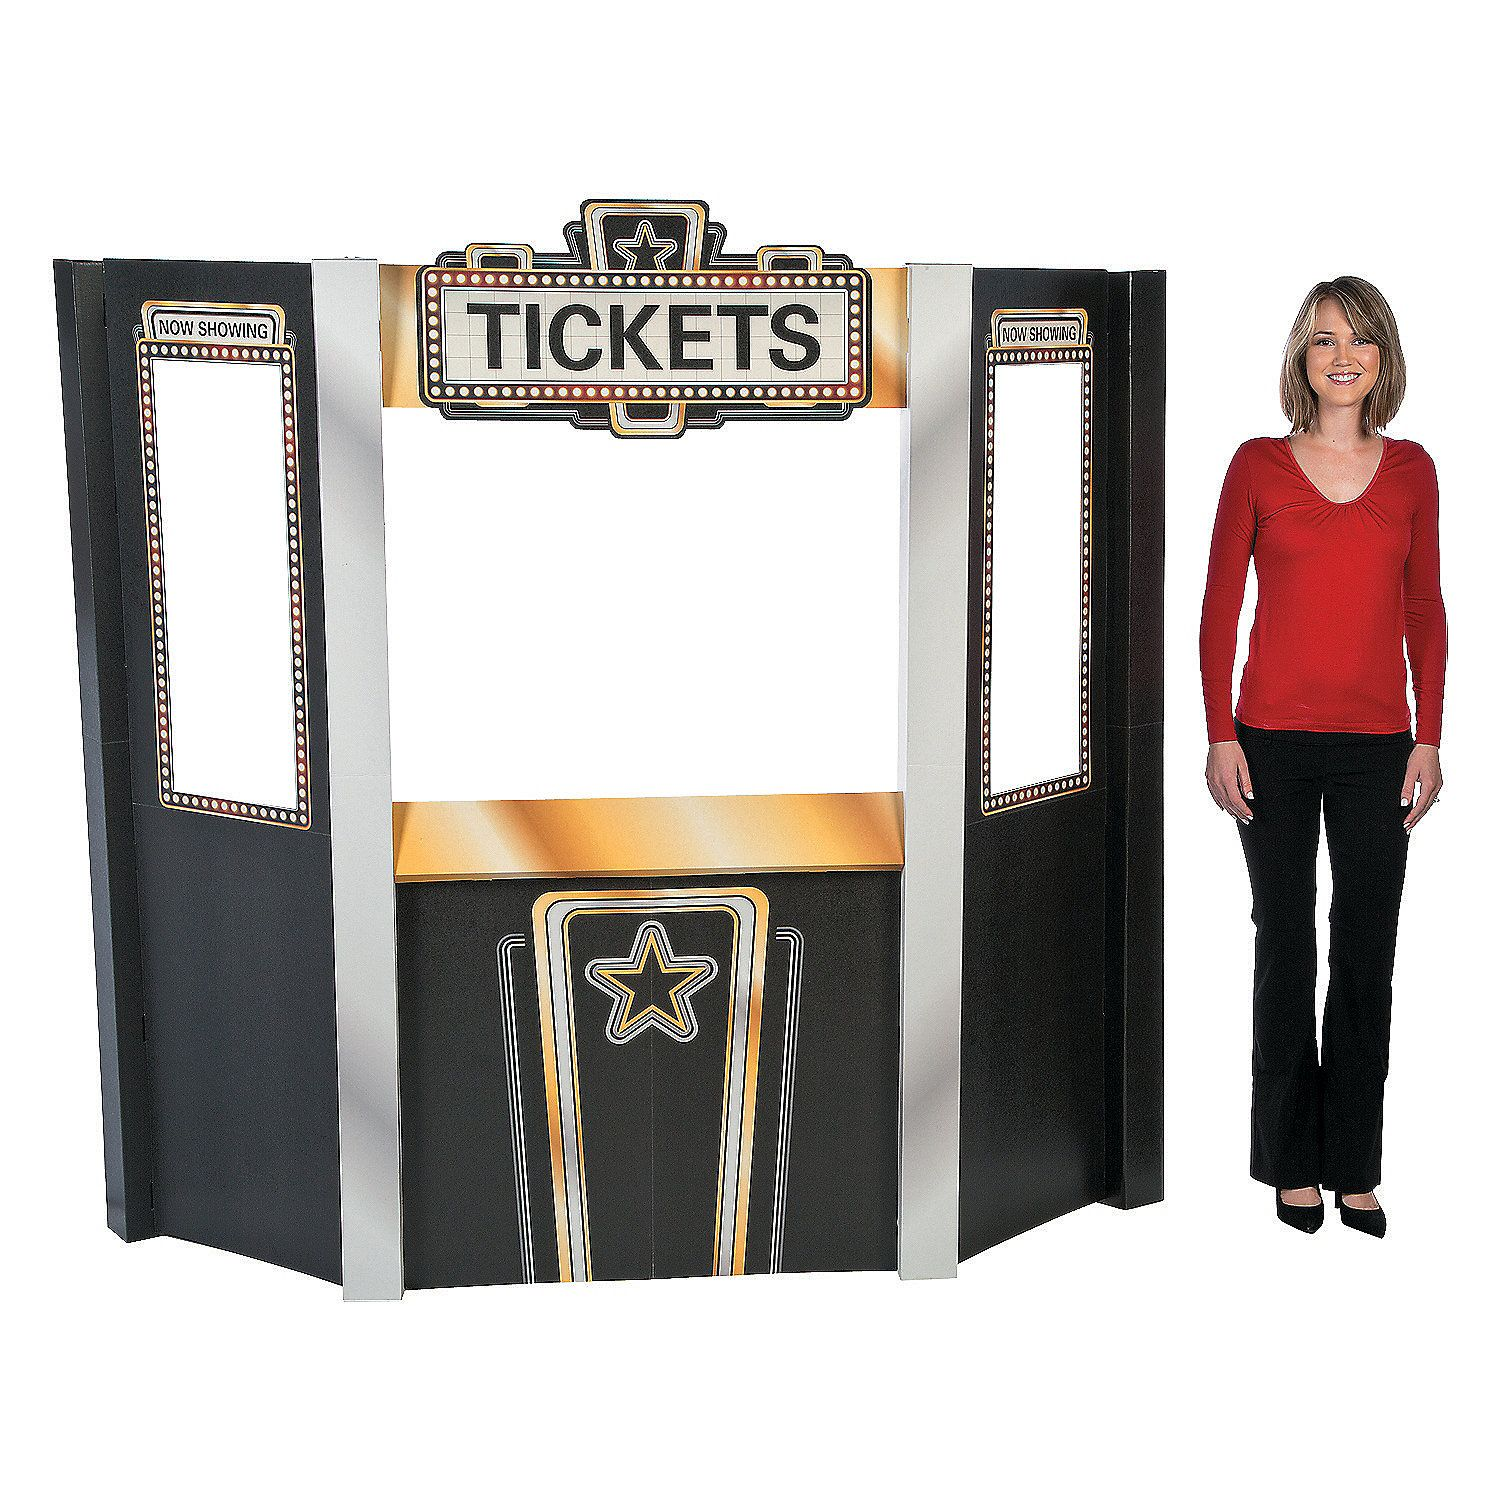 movie night theater ticket booth cardboard stand up pinterest